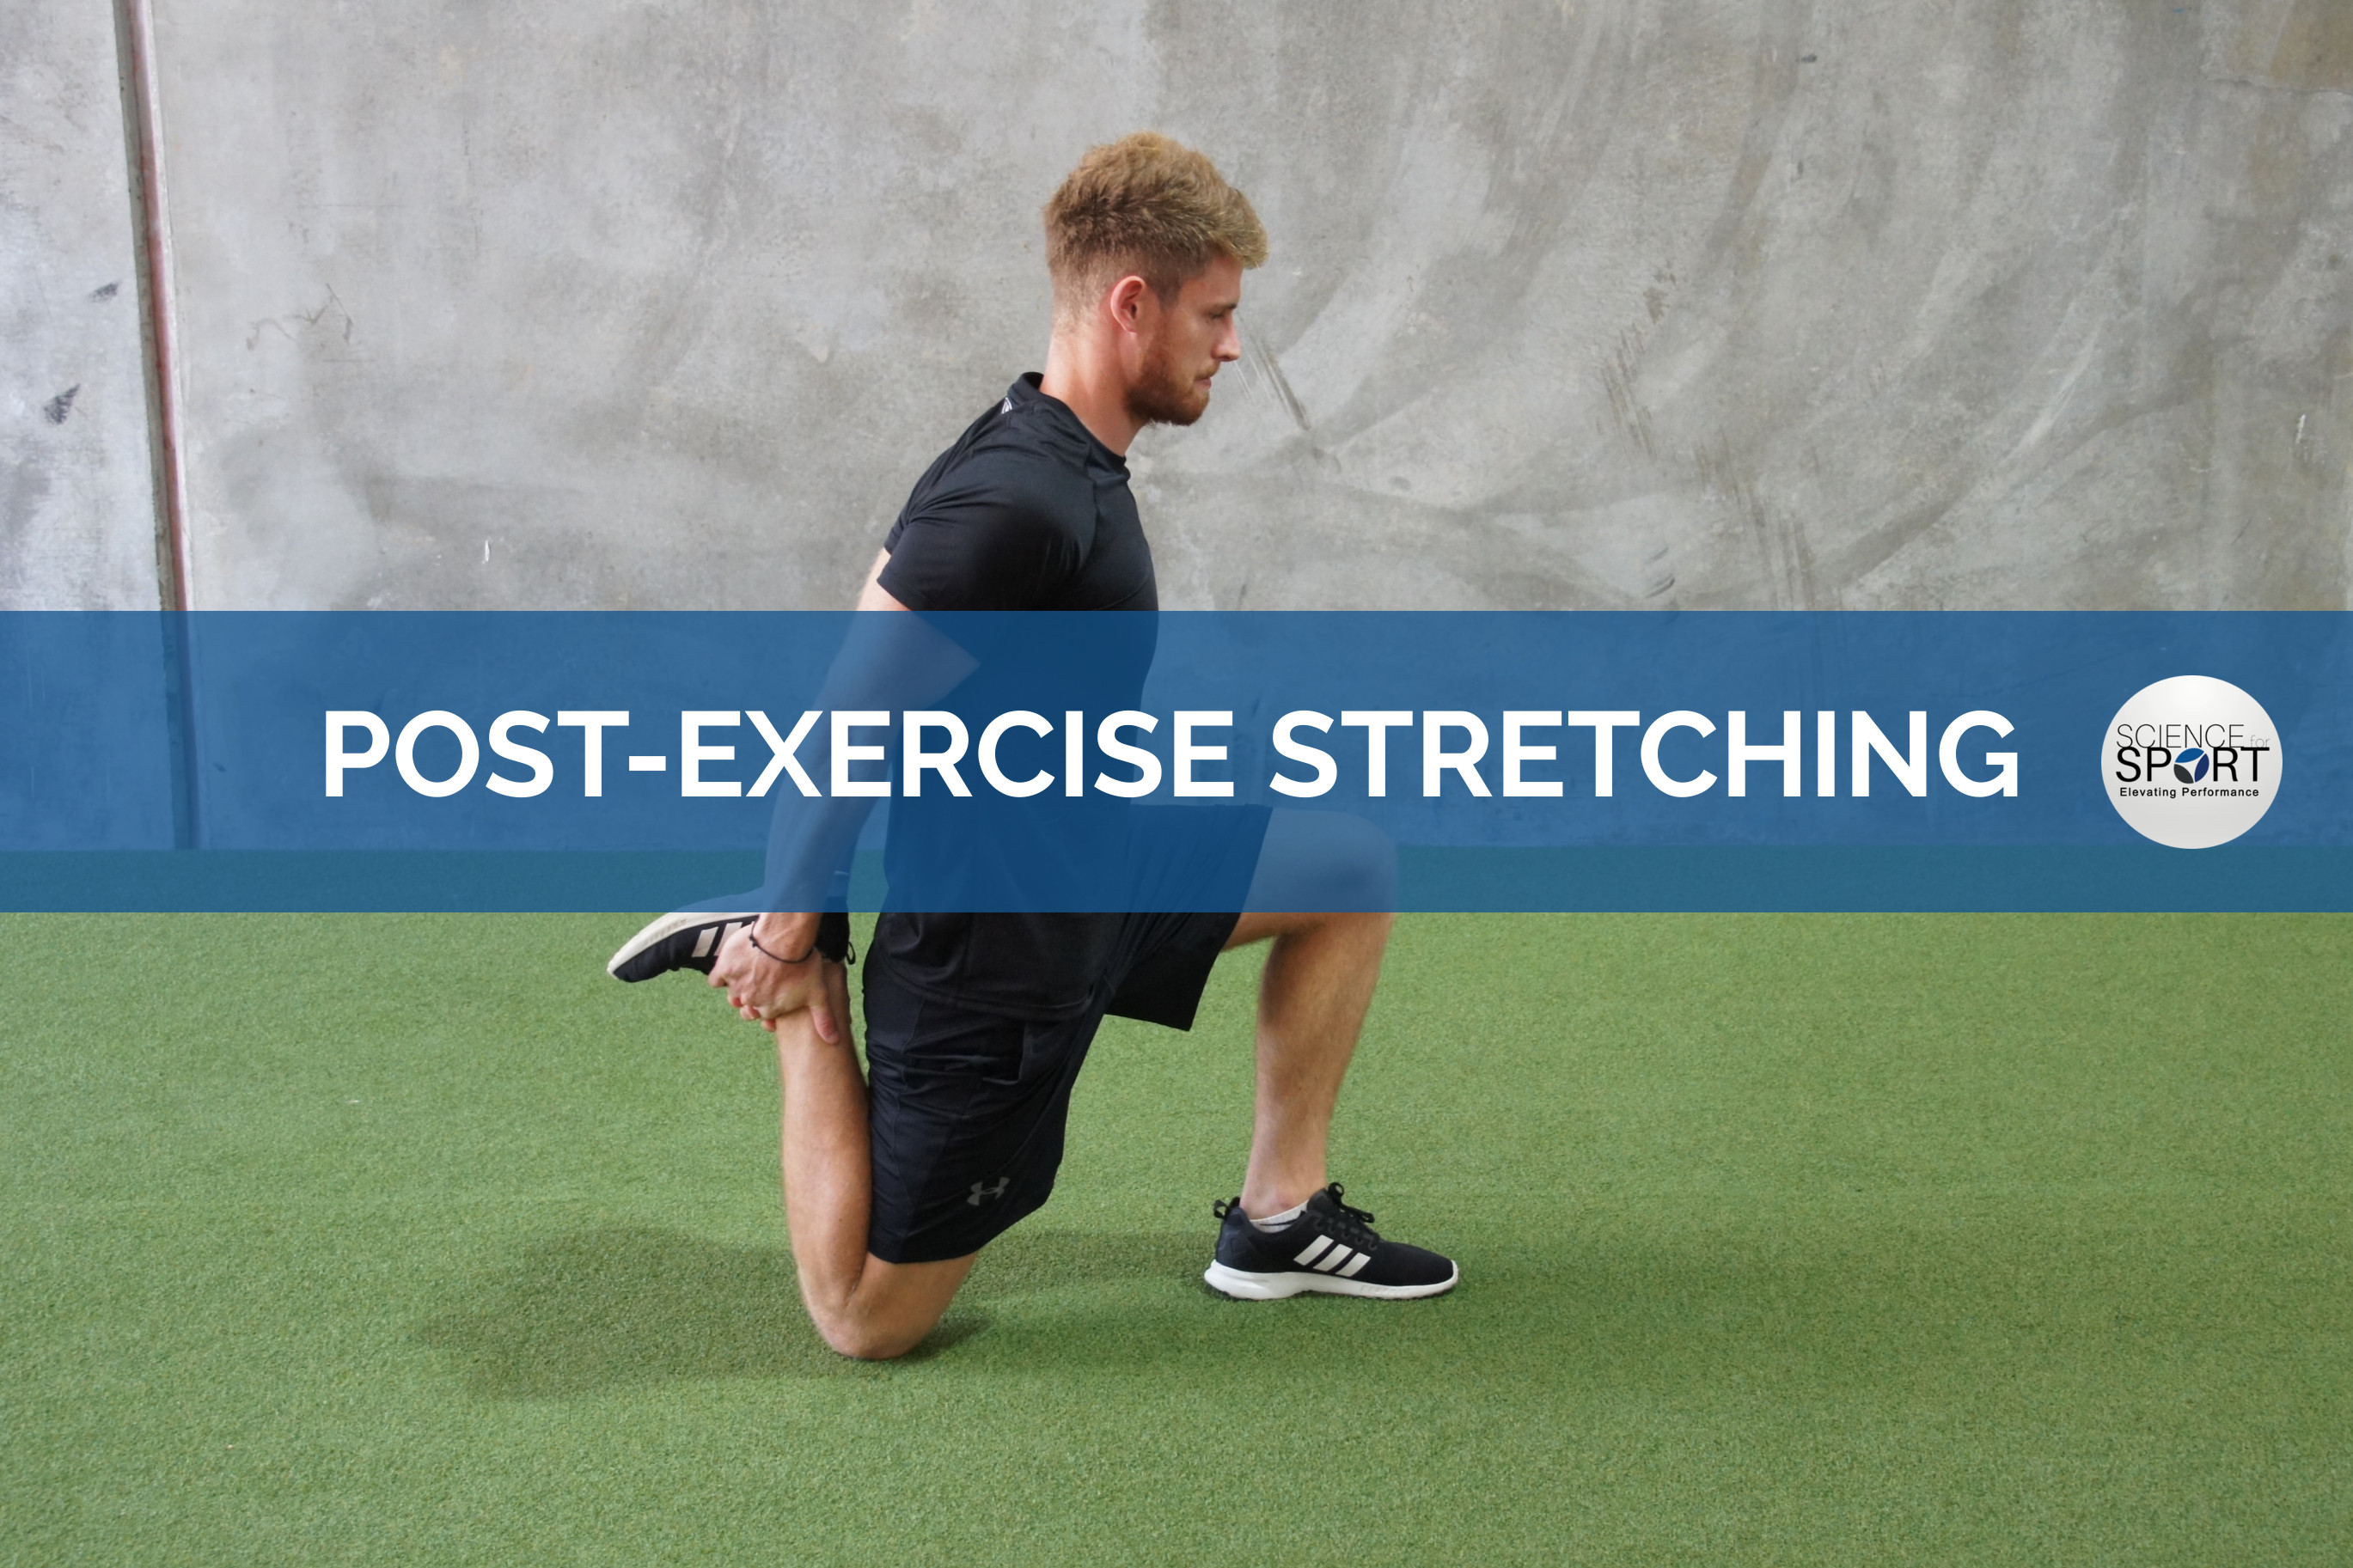 post-exercise stretching - Science for Sport - Recovery